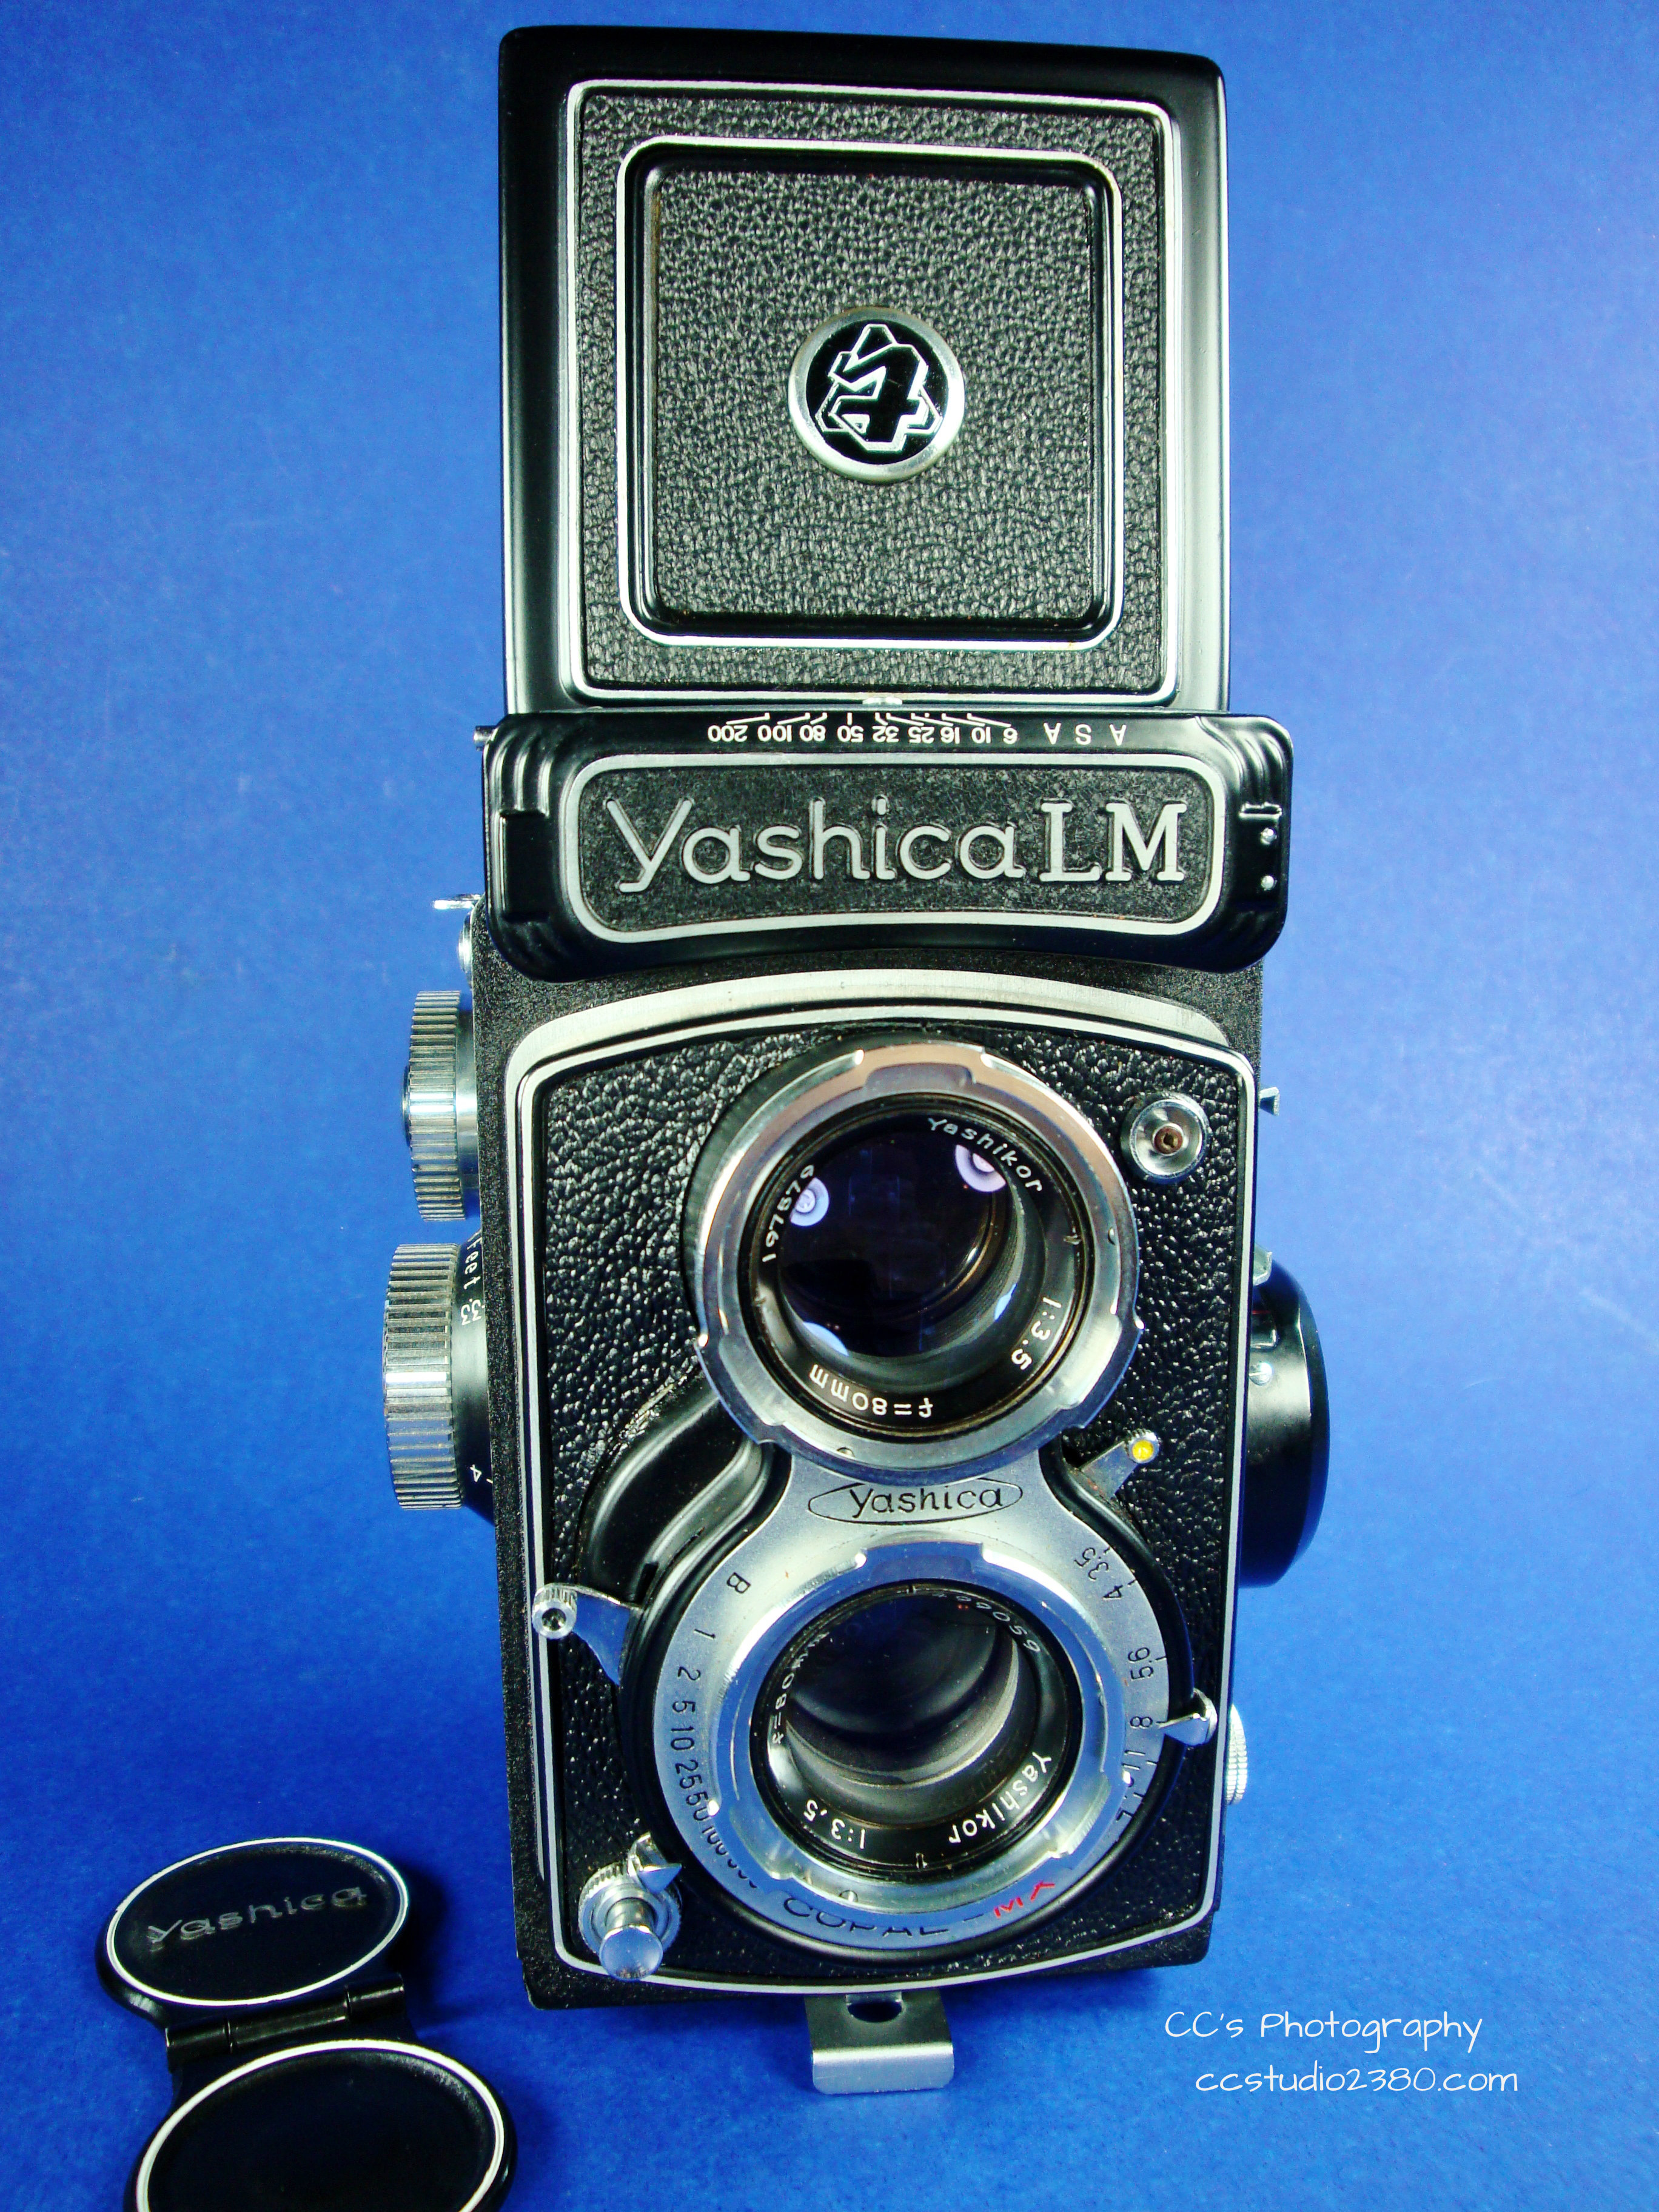 yashica lm first logo